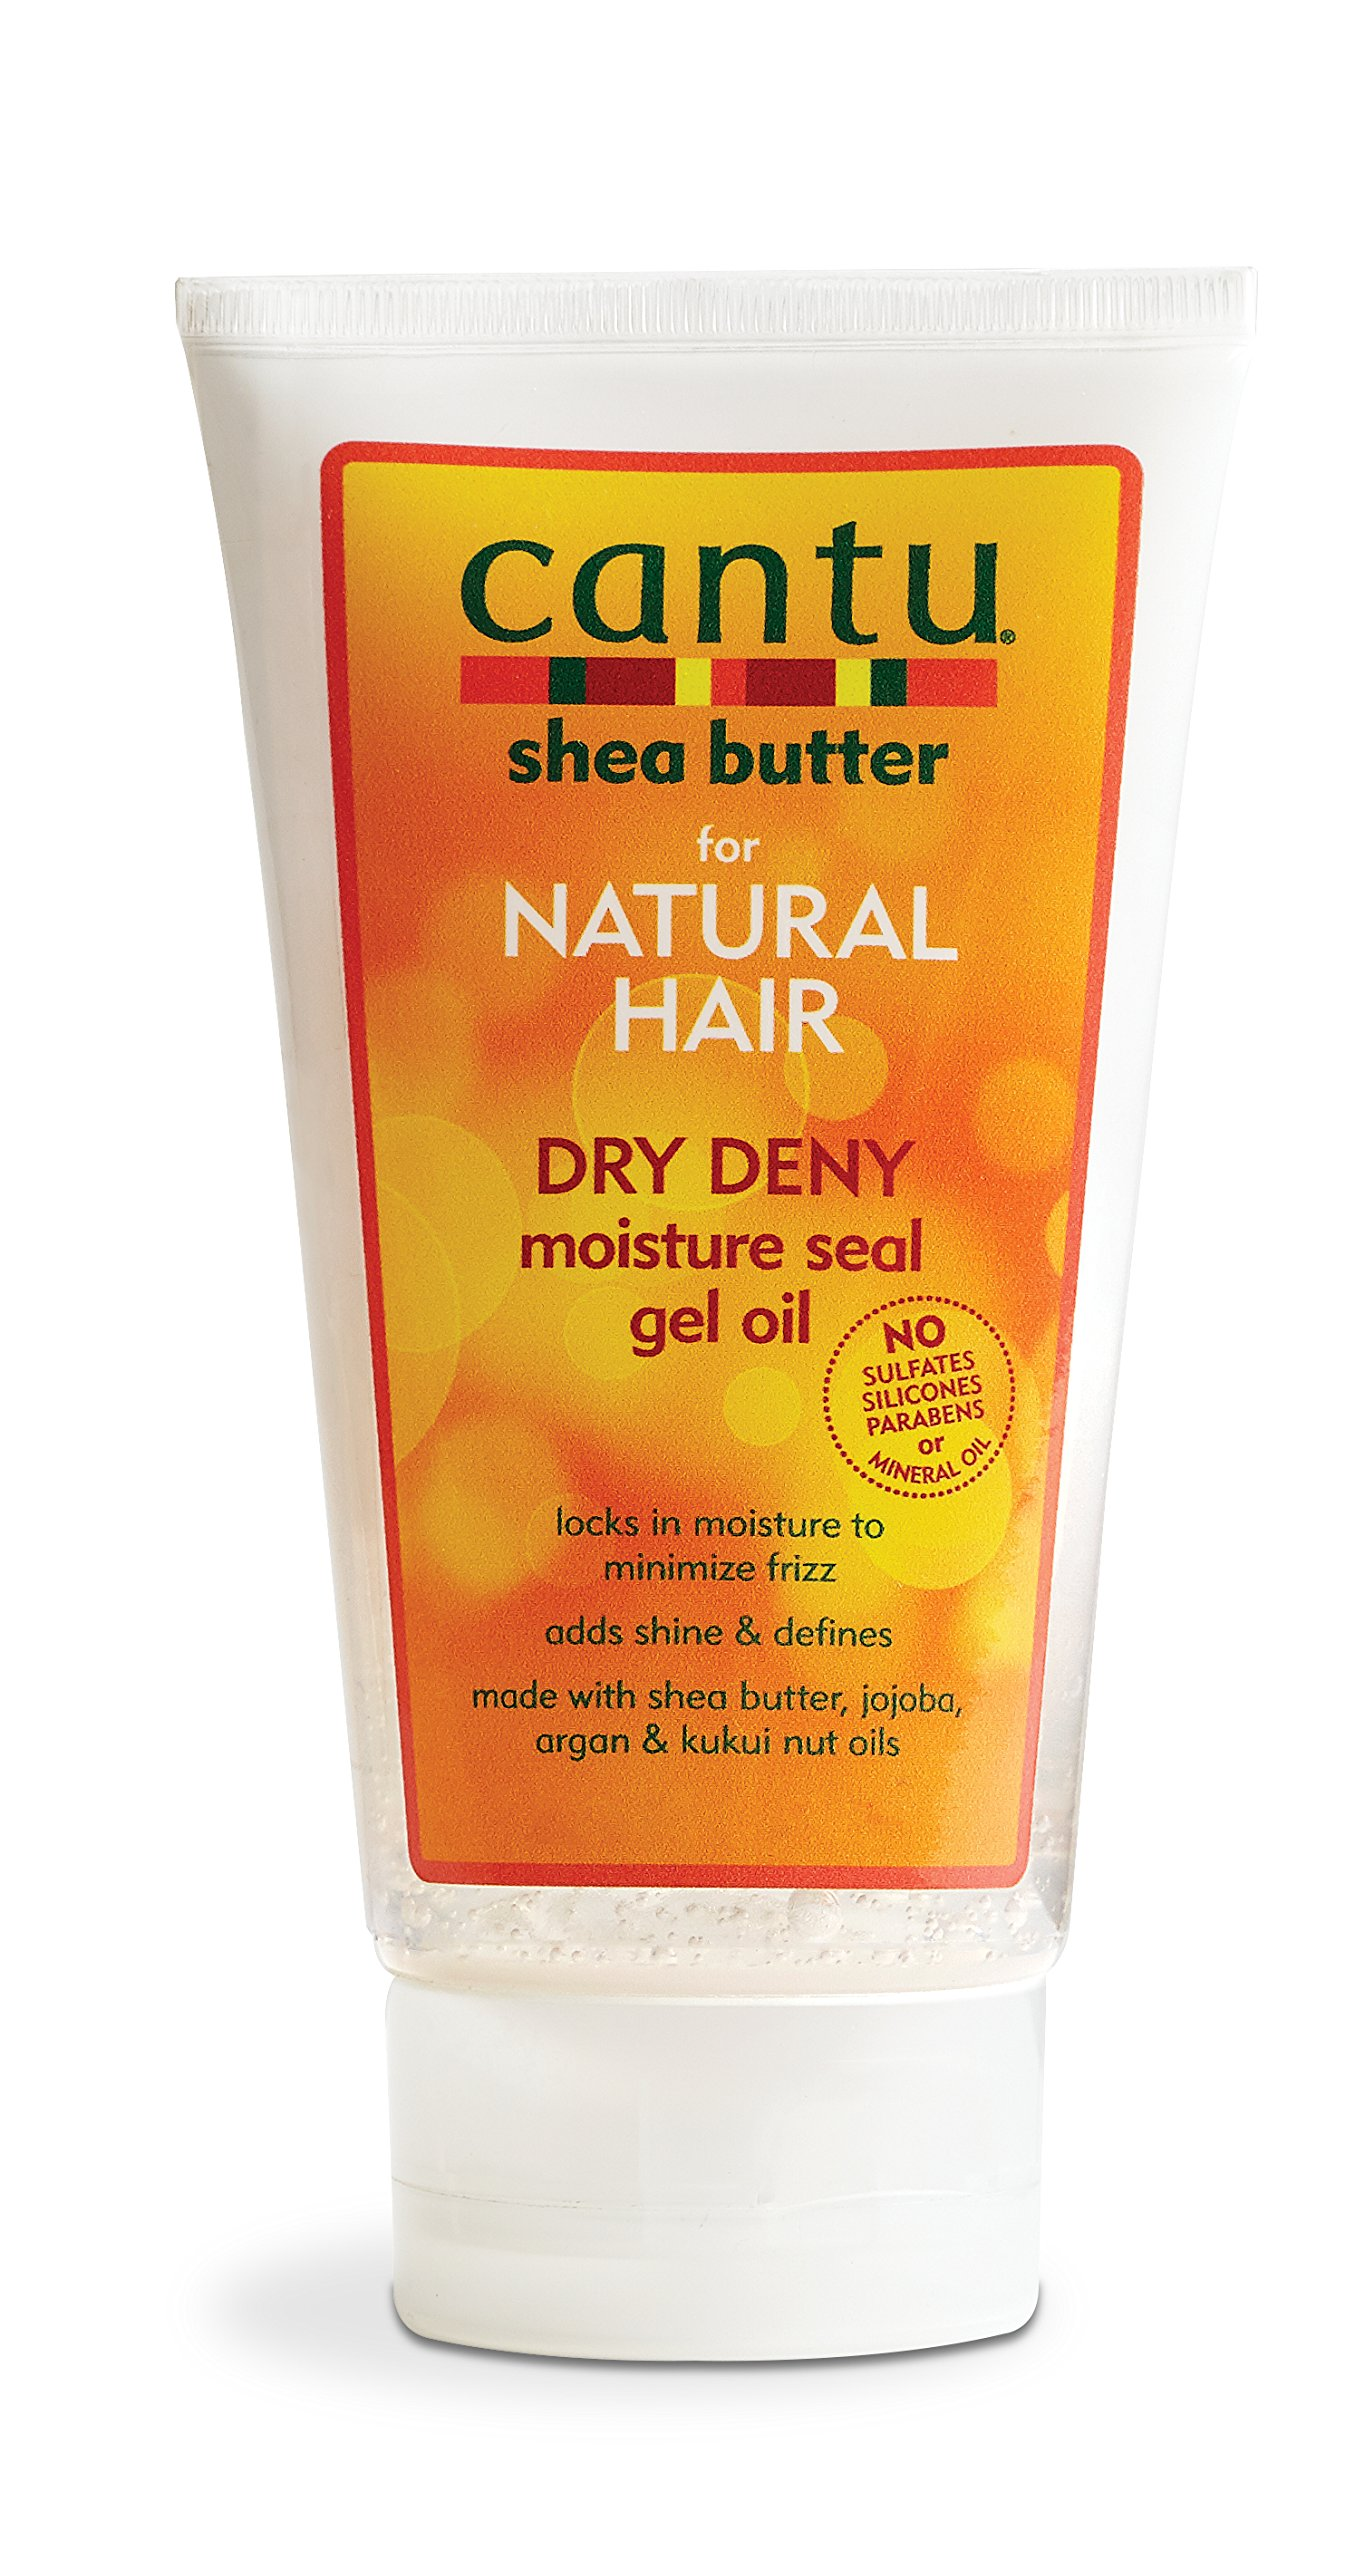 Cantu Shea Butter for Natural Hair Dry Deny Moisture Seal Gel Oil, 5 Ounce (Pack of 6)